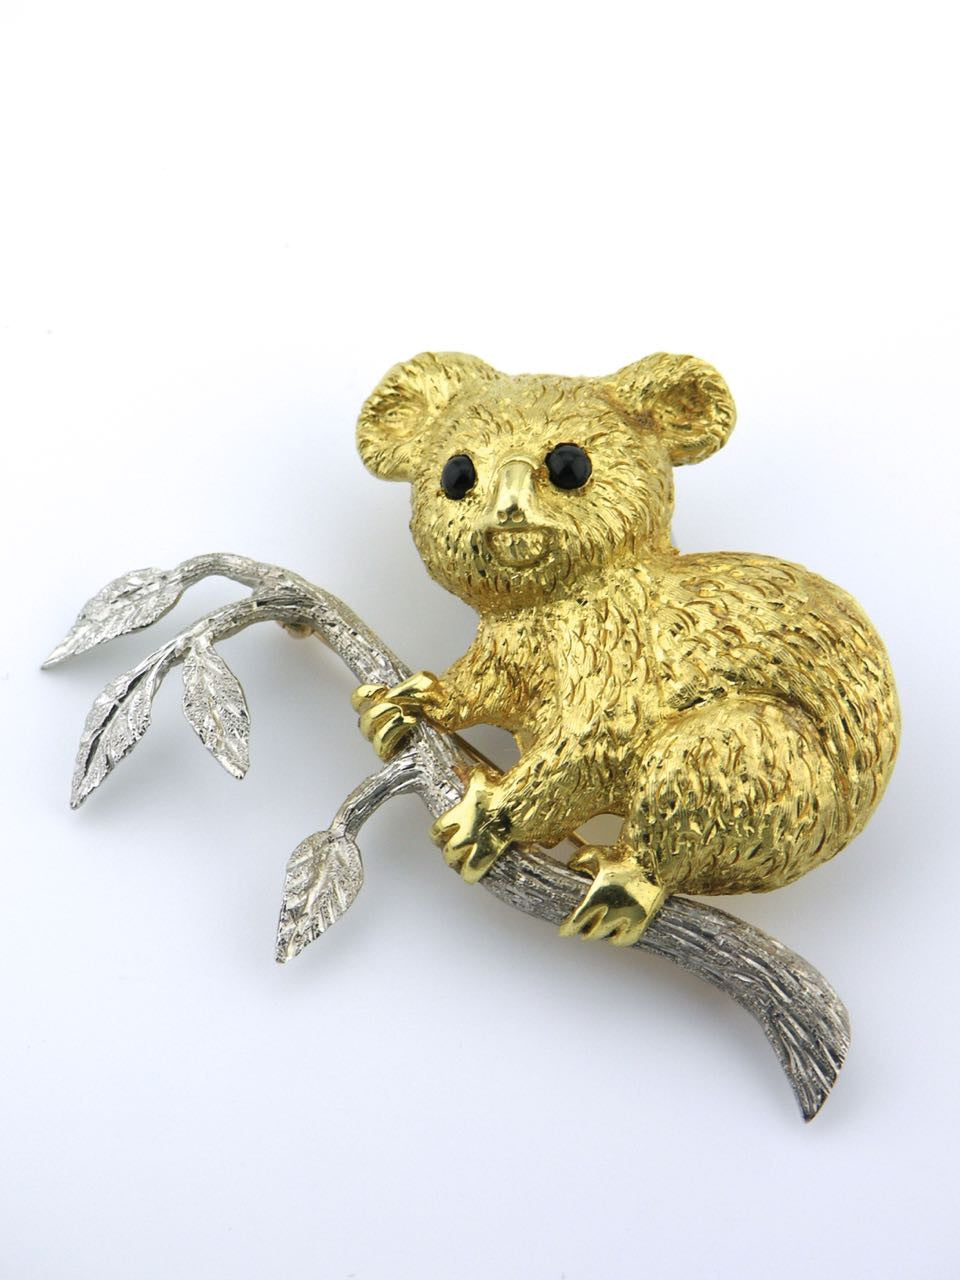 Italian 18k yellow and white gold Koala pin